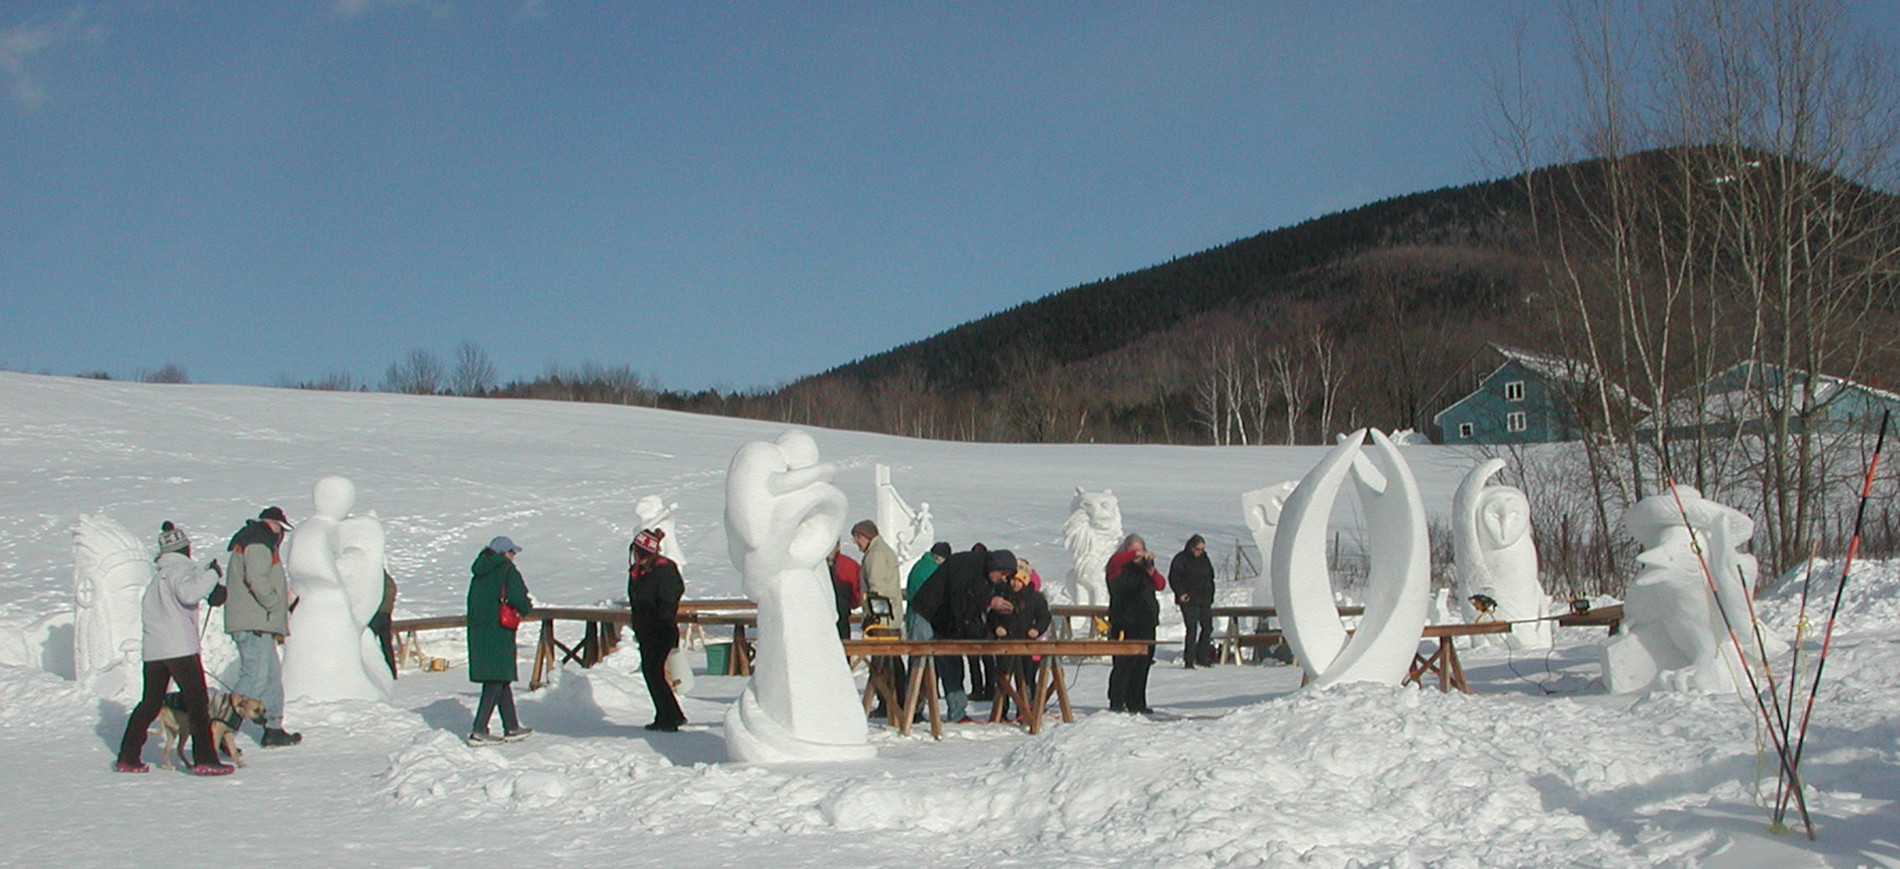 snow sculptors working on sculptures with mountain in background